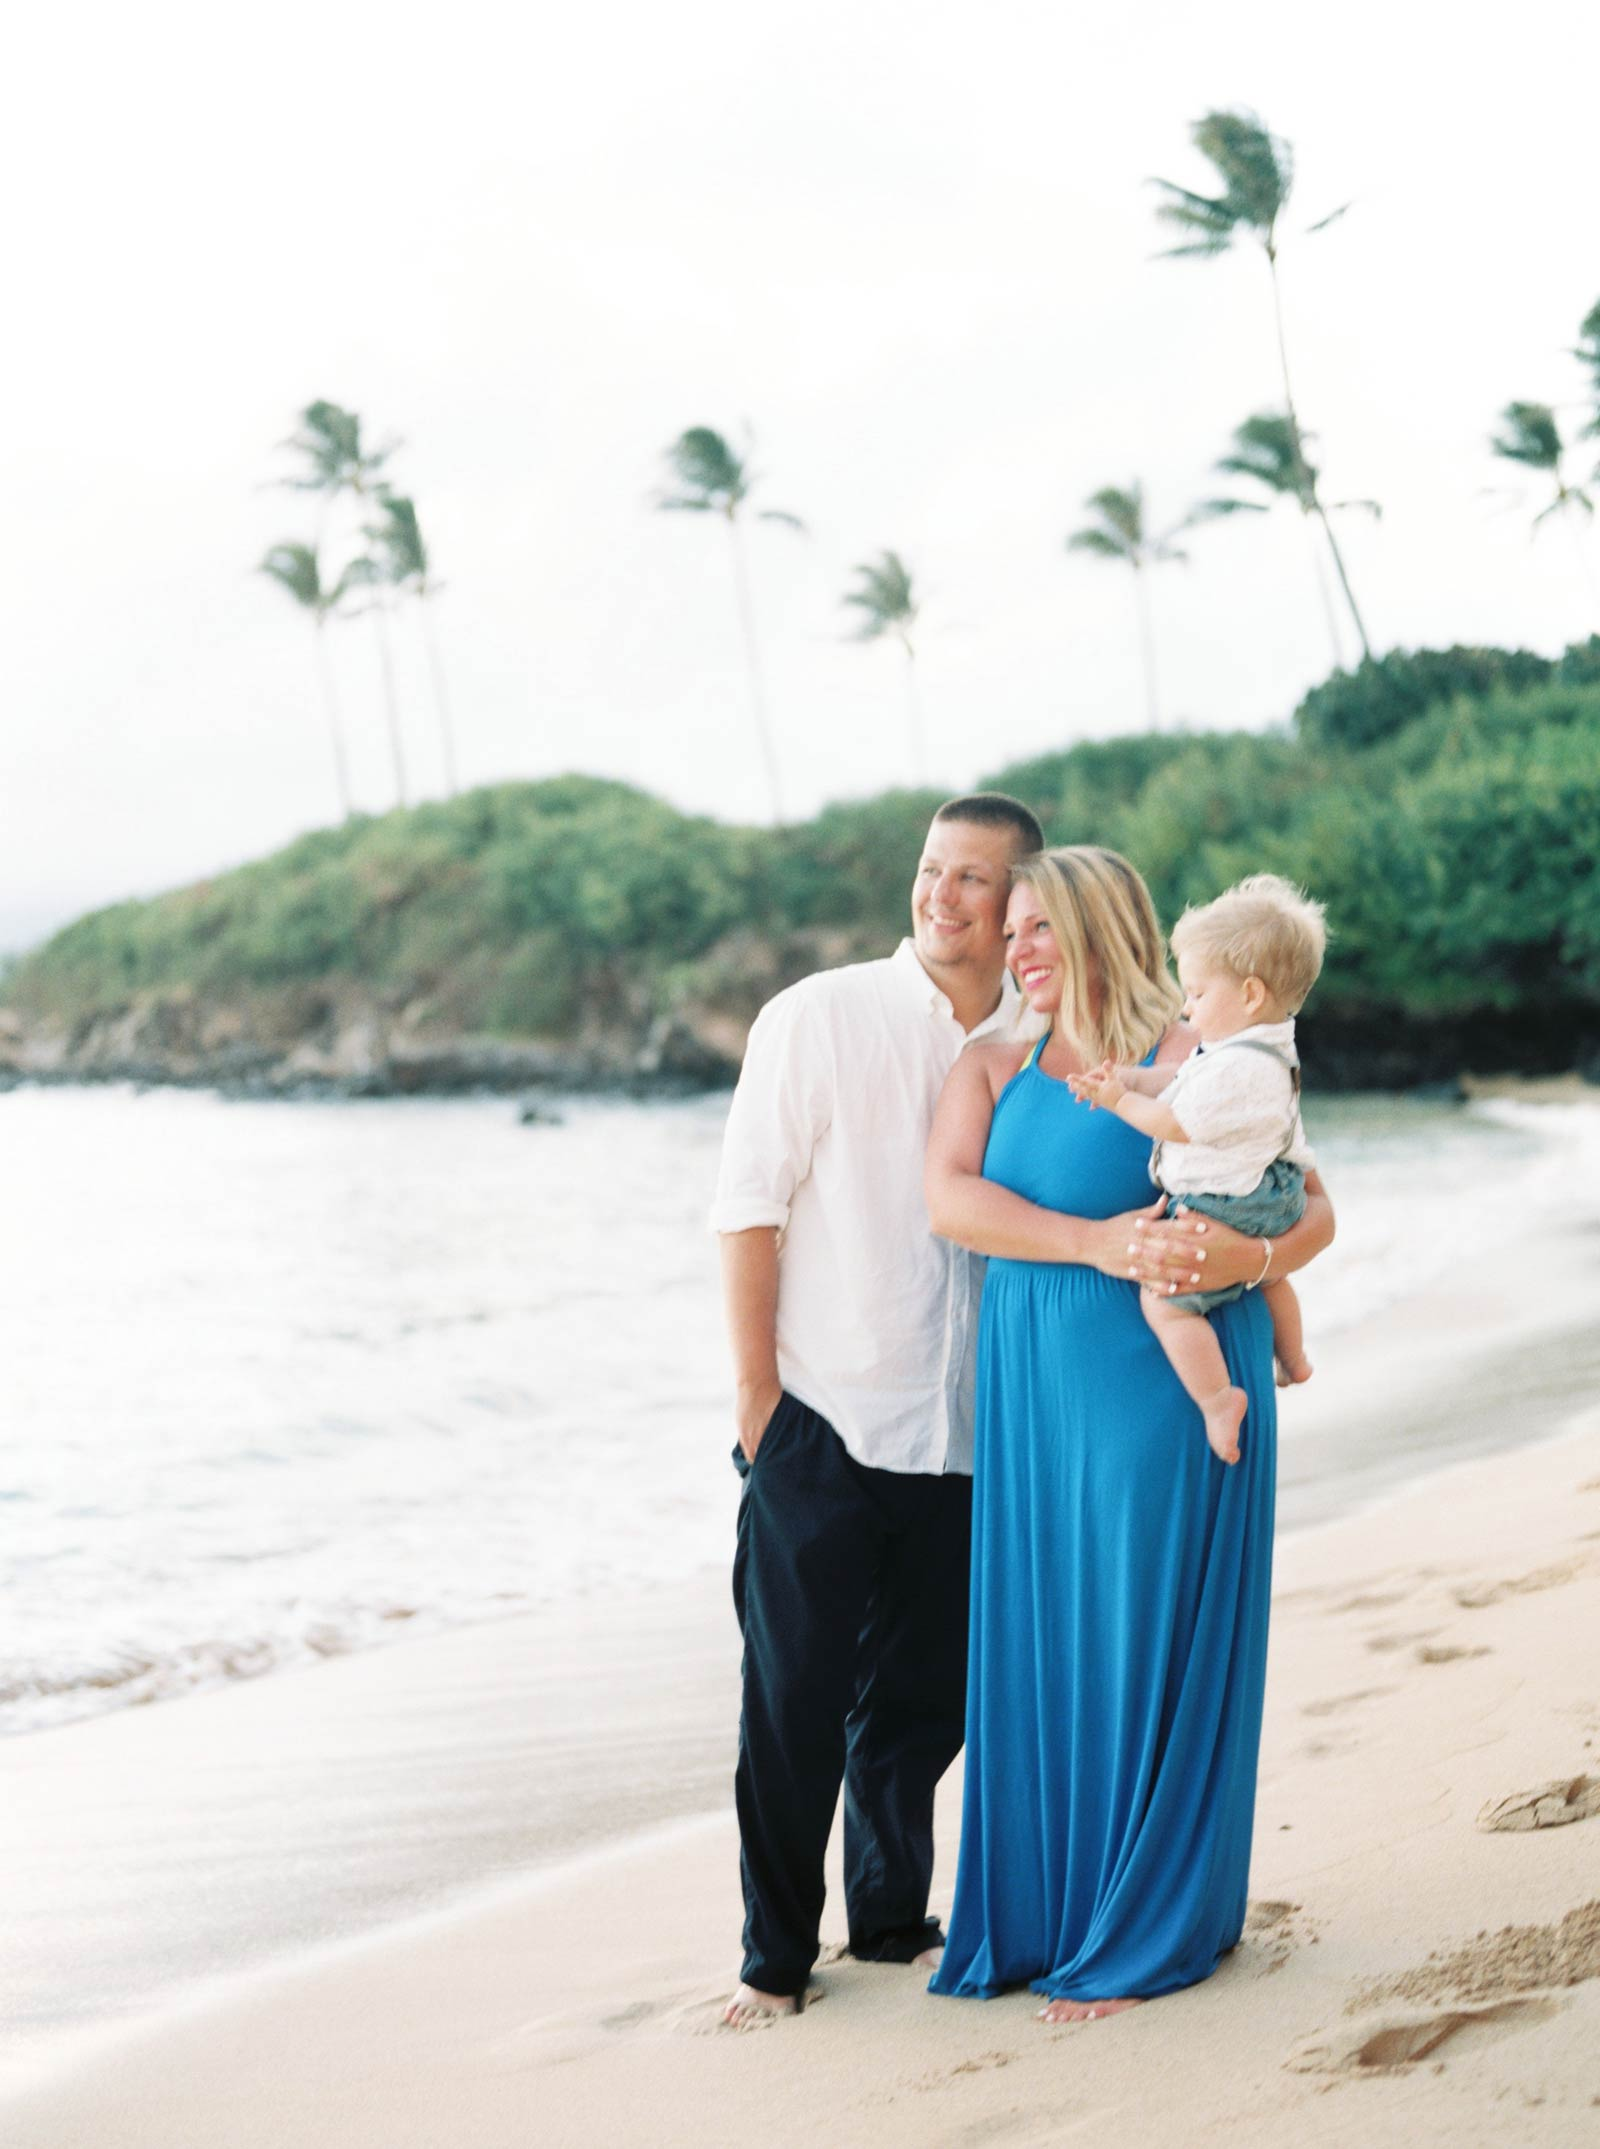 Maui-vow-renewal-family-photos-032.jpg